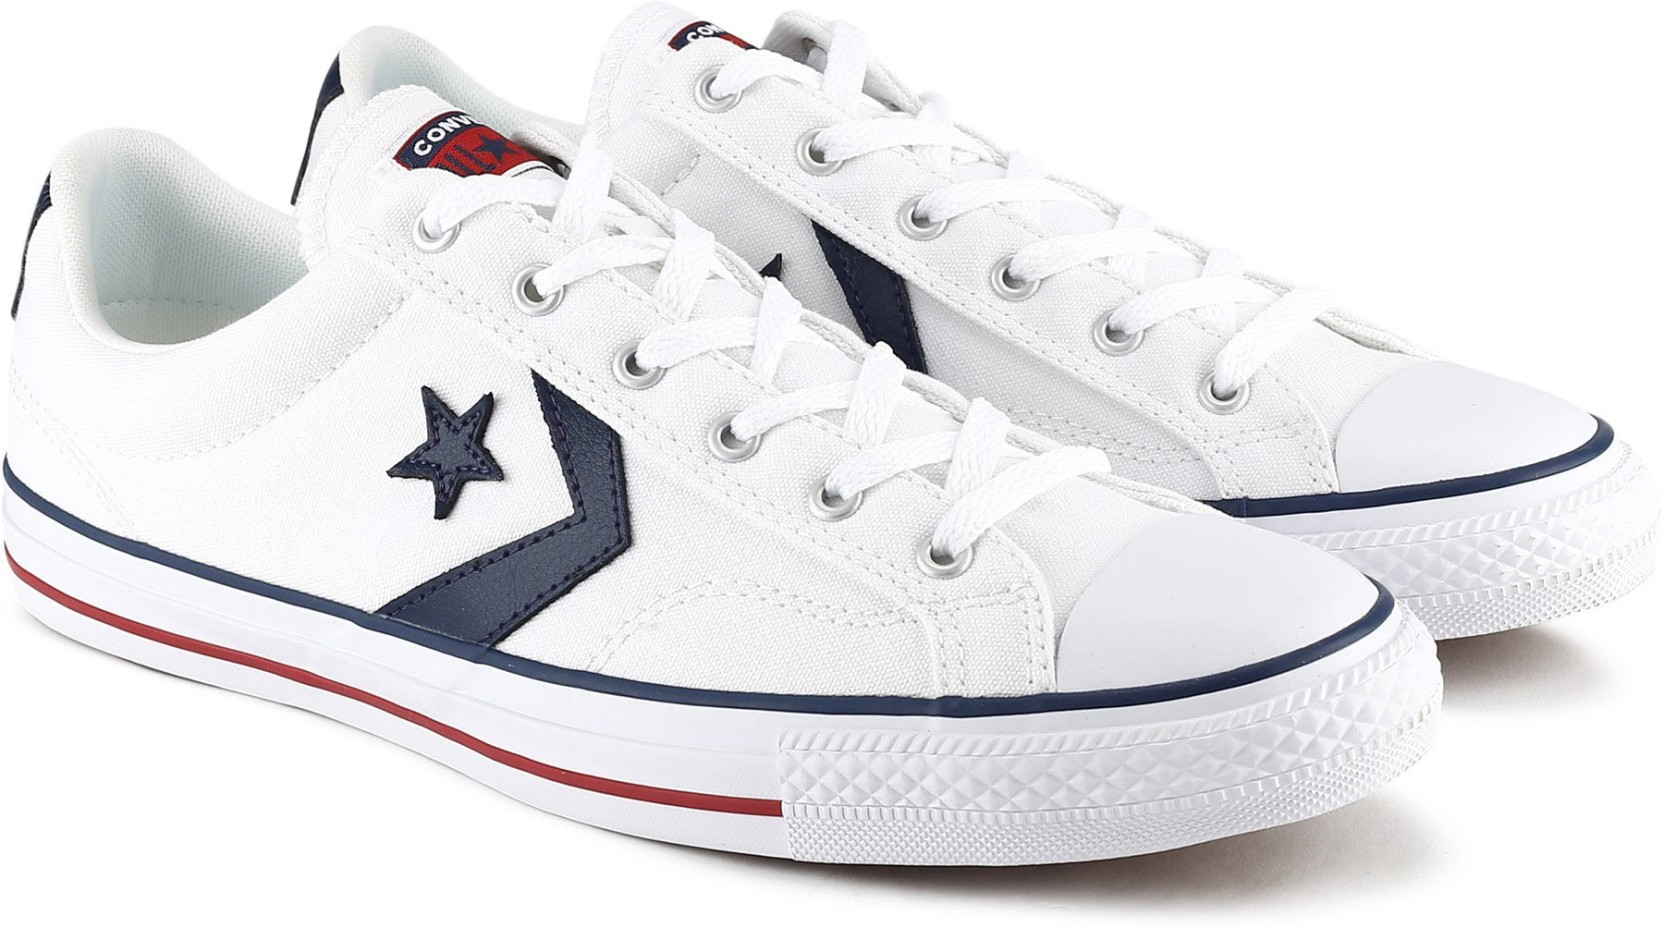 721f87ffe31b Converse 144151C Casuals For Men - Buy WHITE WHITE NAVY Color ...